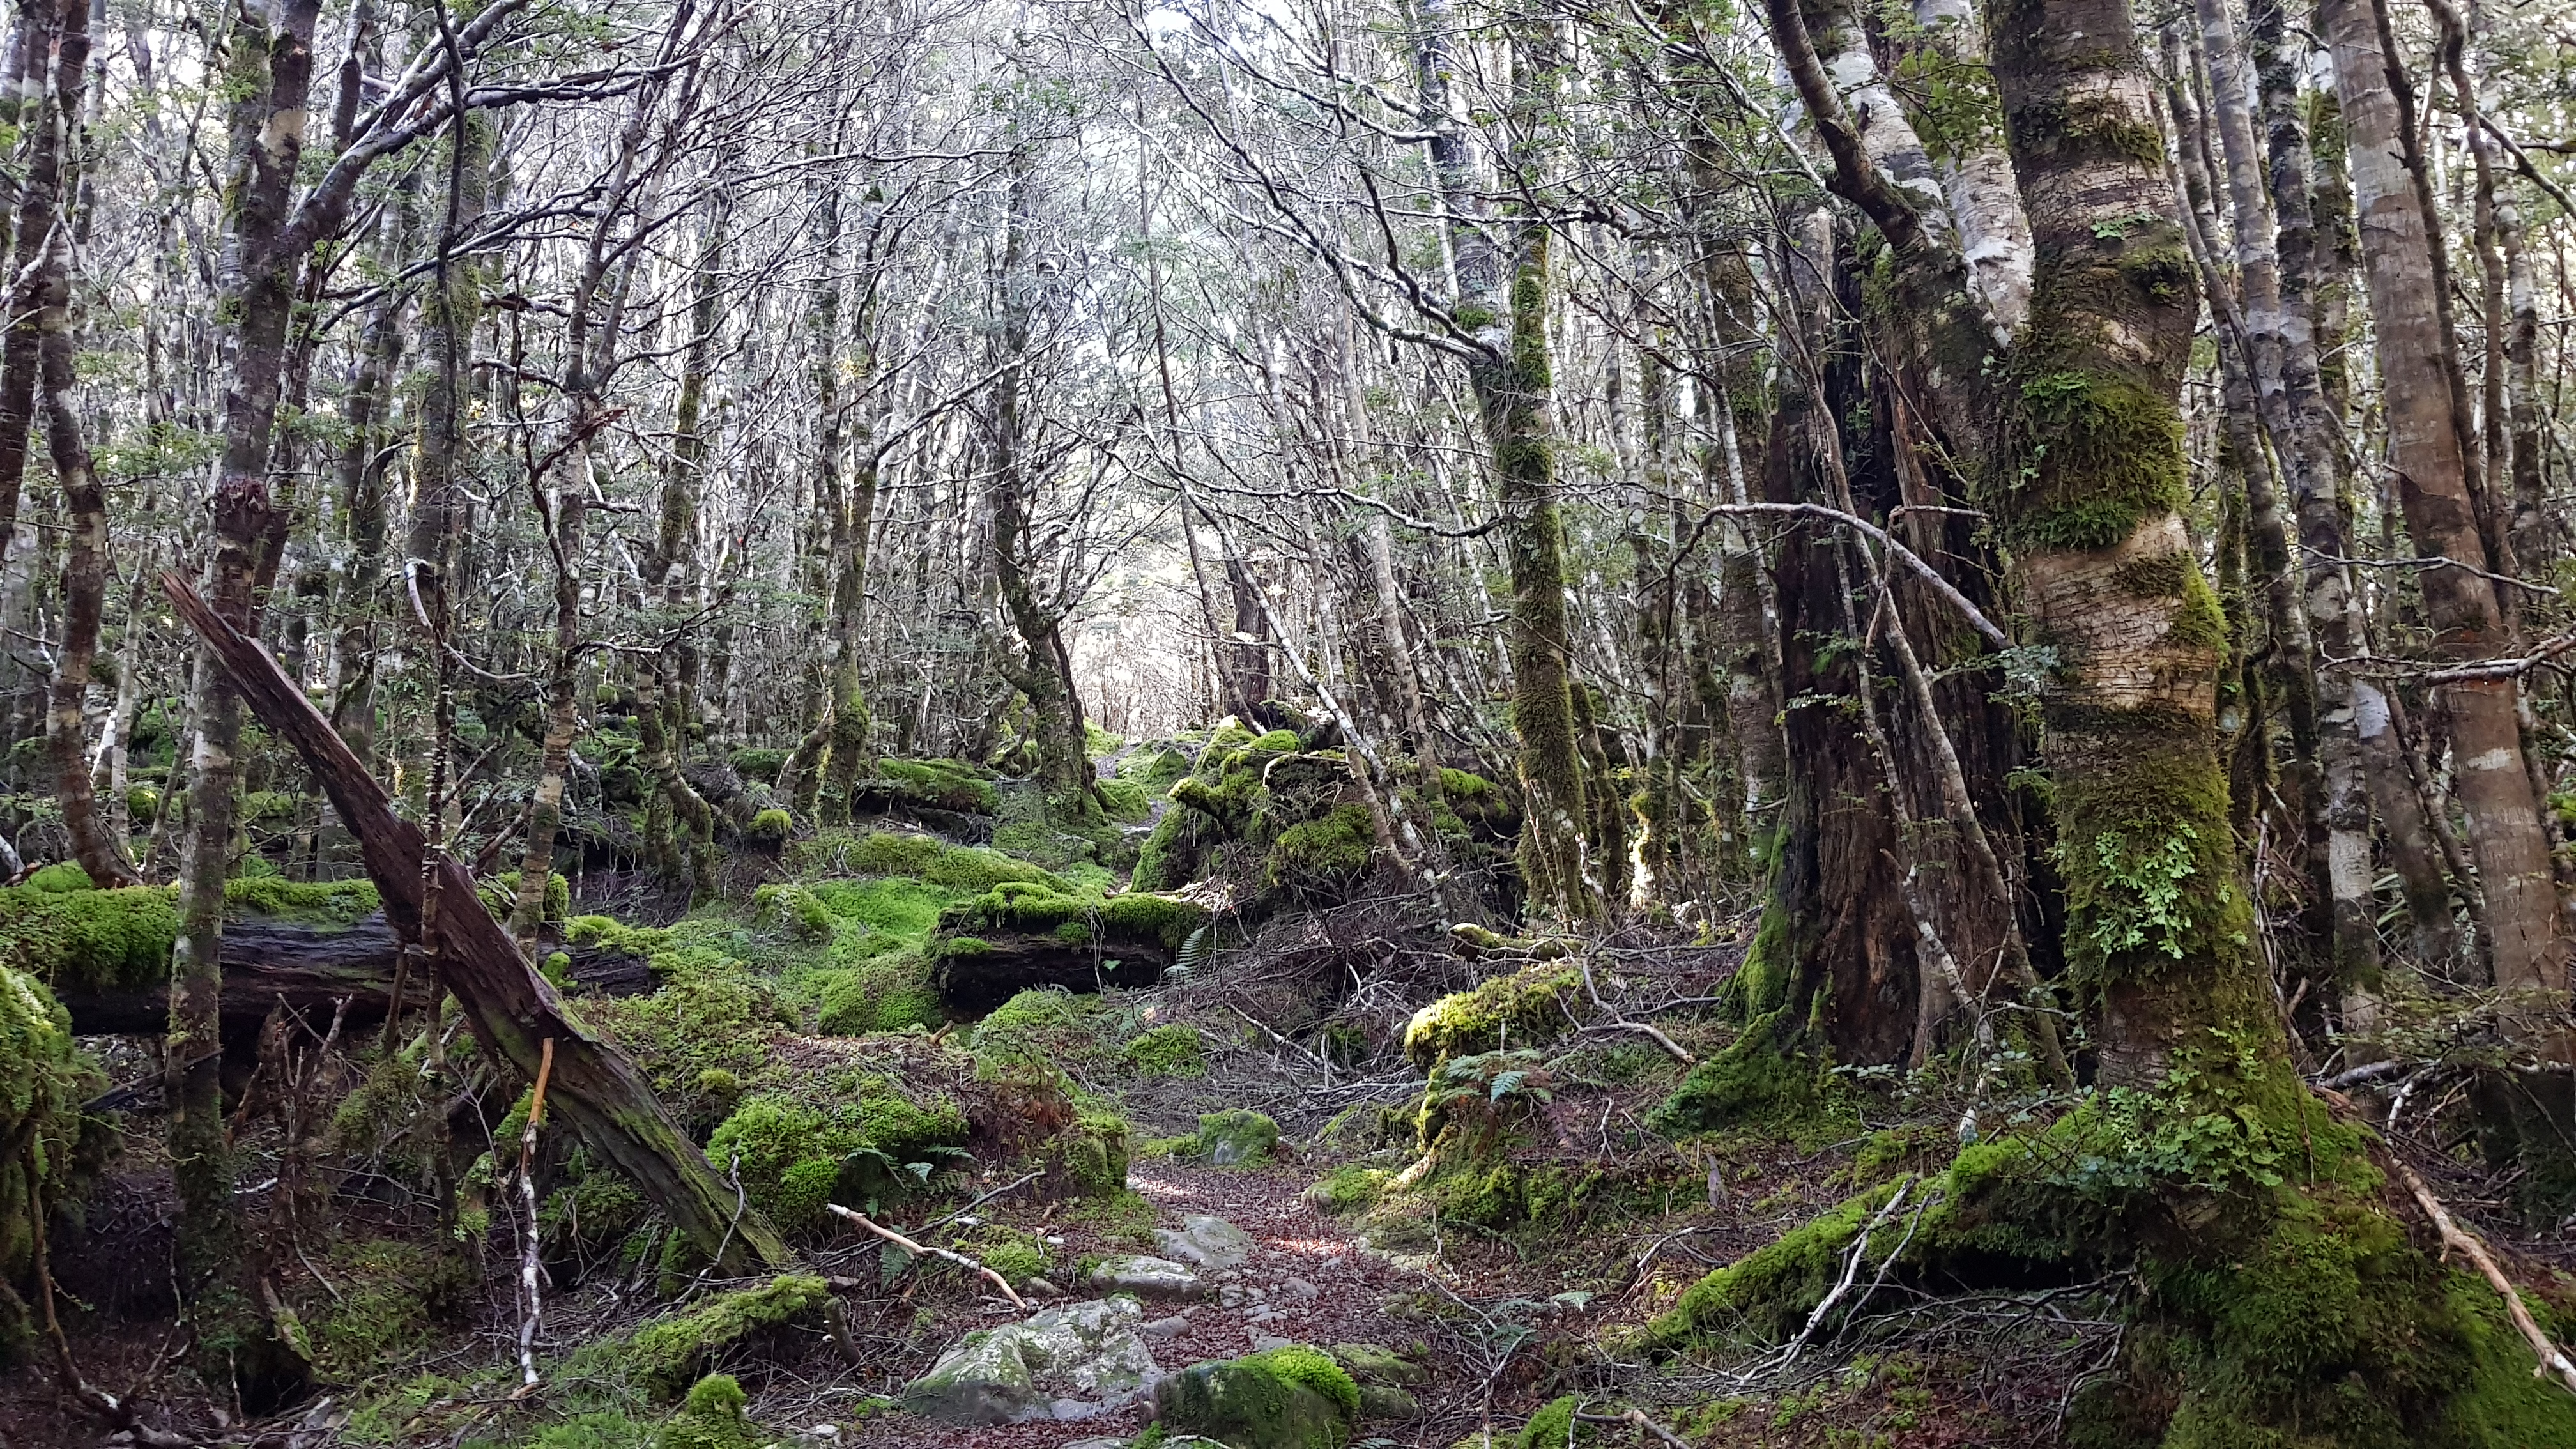 Mossy forest close to Cannibal Gorge hut